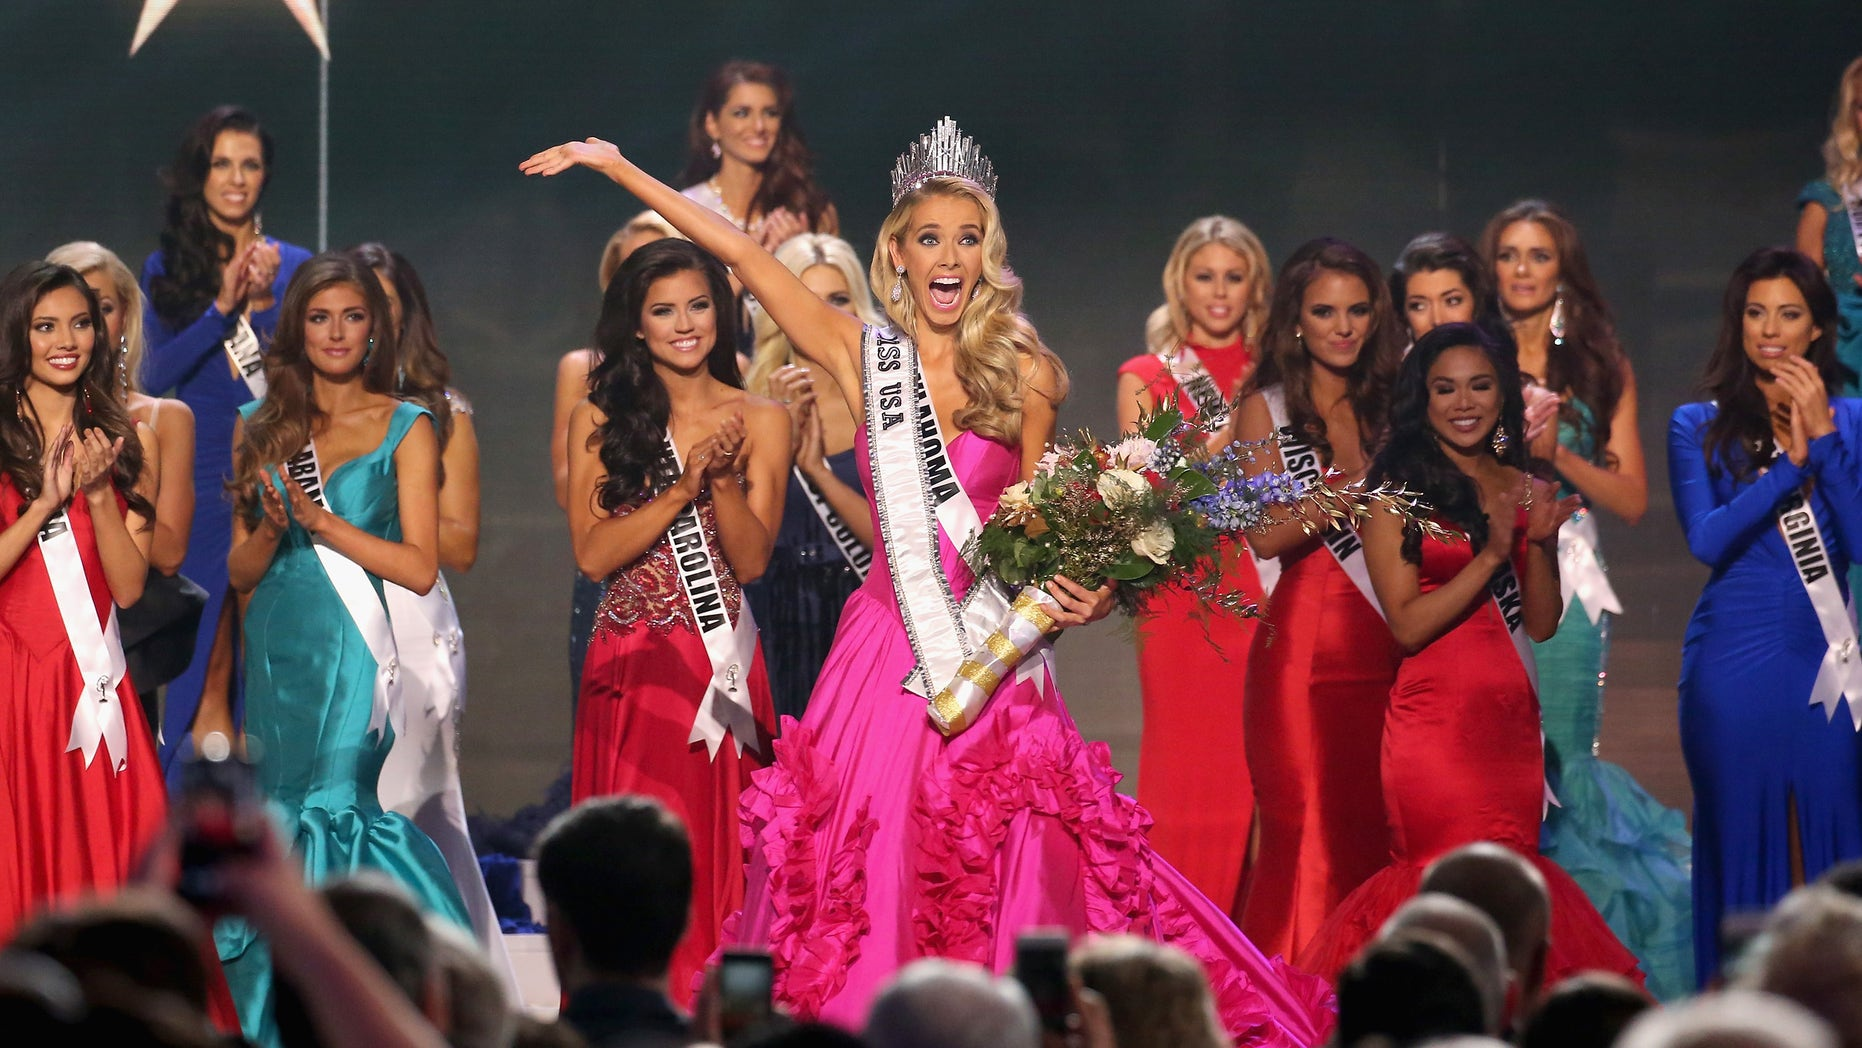 BATON ROUGE, LA - JULY 12:  Miss USA 2015 Olivia Jordan Miss USA 2015 Olivia Jordan walks onstage at 2015 Miss USA Pageant Only On ReelzChannel at The Baton Rouge River Center on July 12, 2015 in Baton Rouge, Louisiana.  (Photo by Josh Brasted/Getty Images for Miss USA)